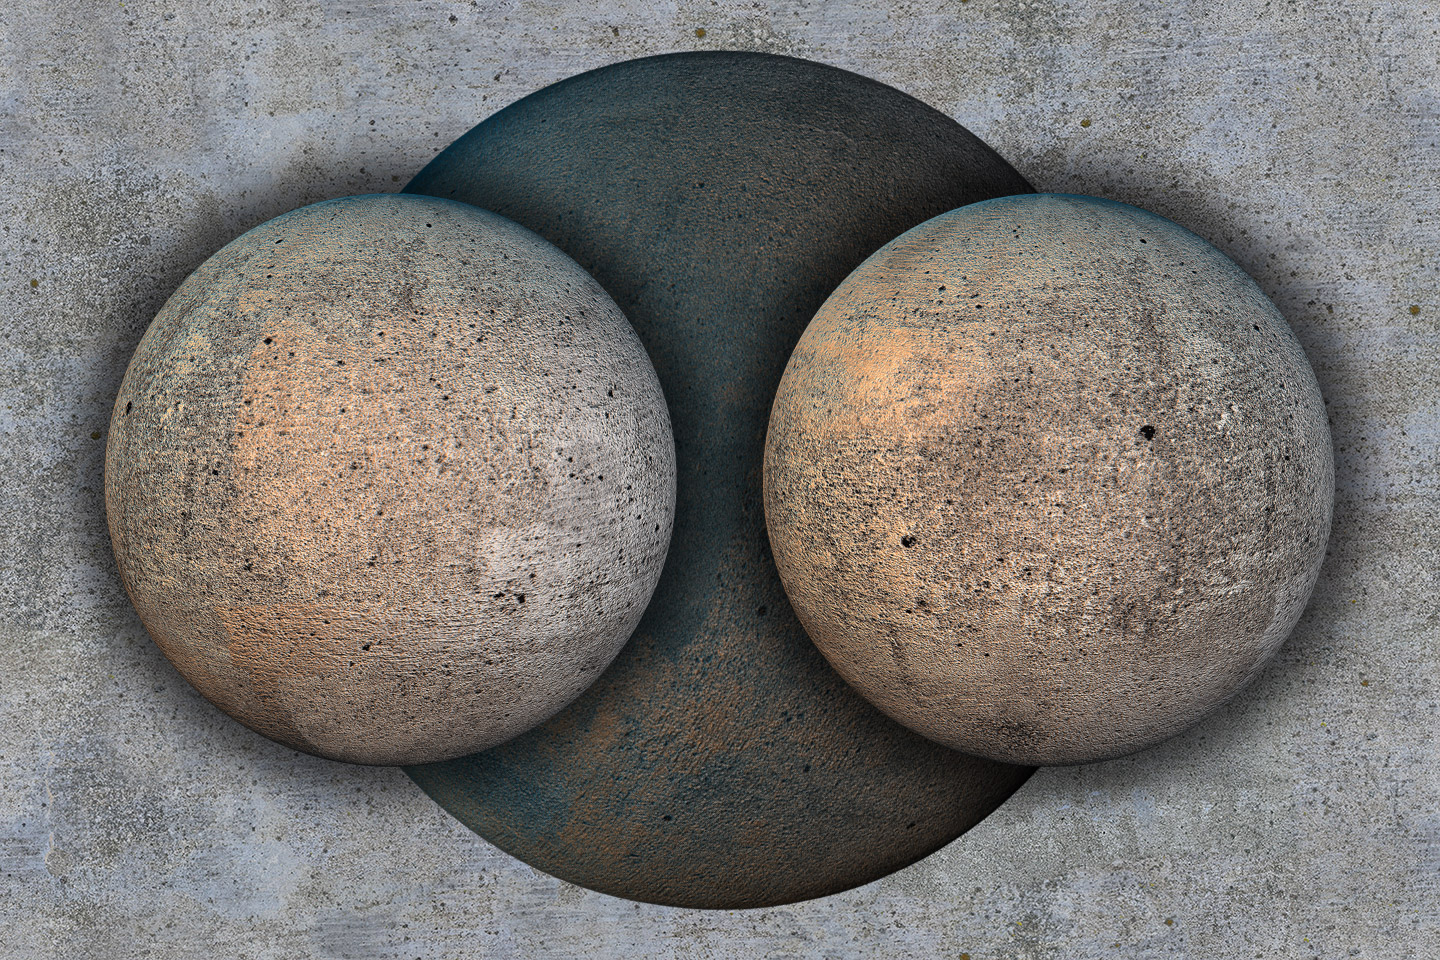 02_seamless_test-spheres_v1_1440